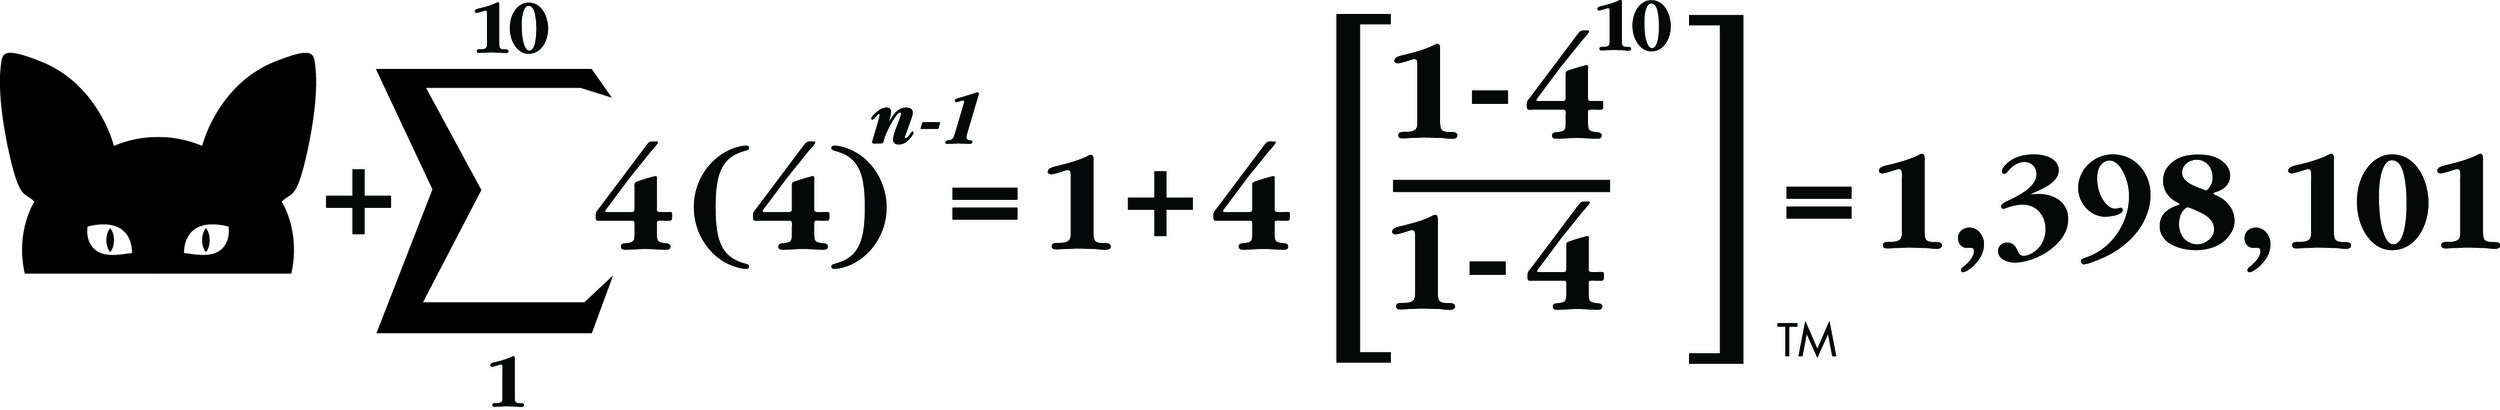 EQUATION - no explanation.jpg